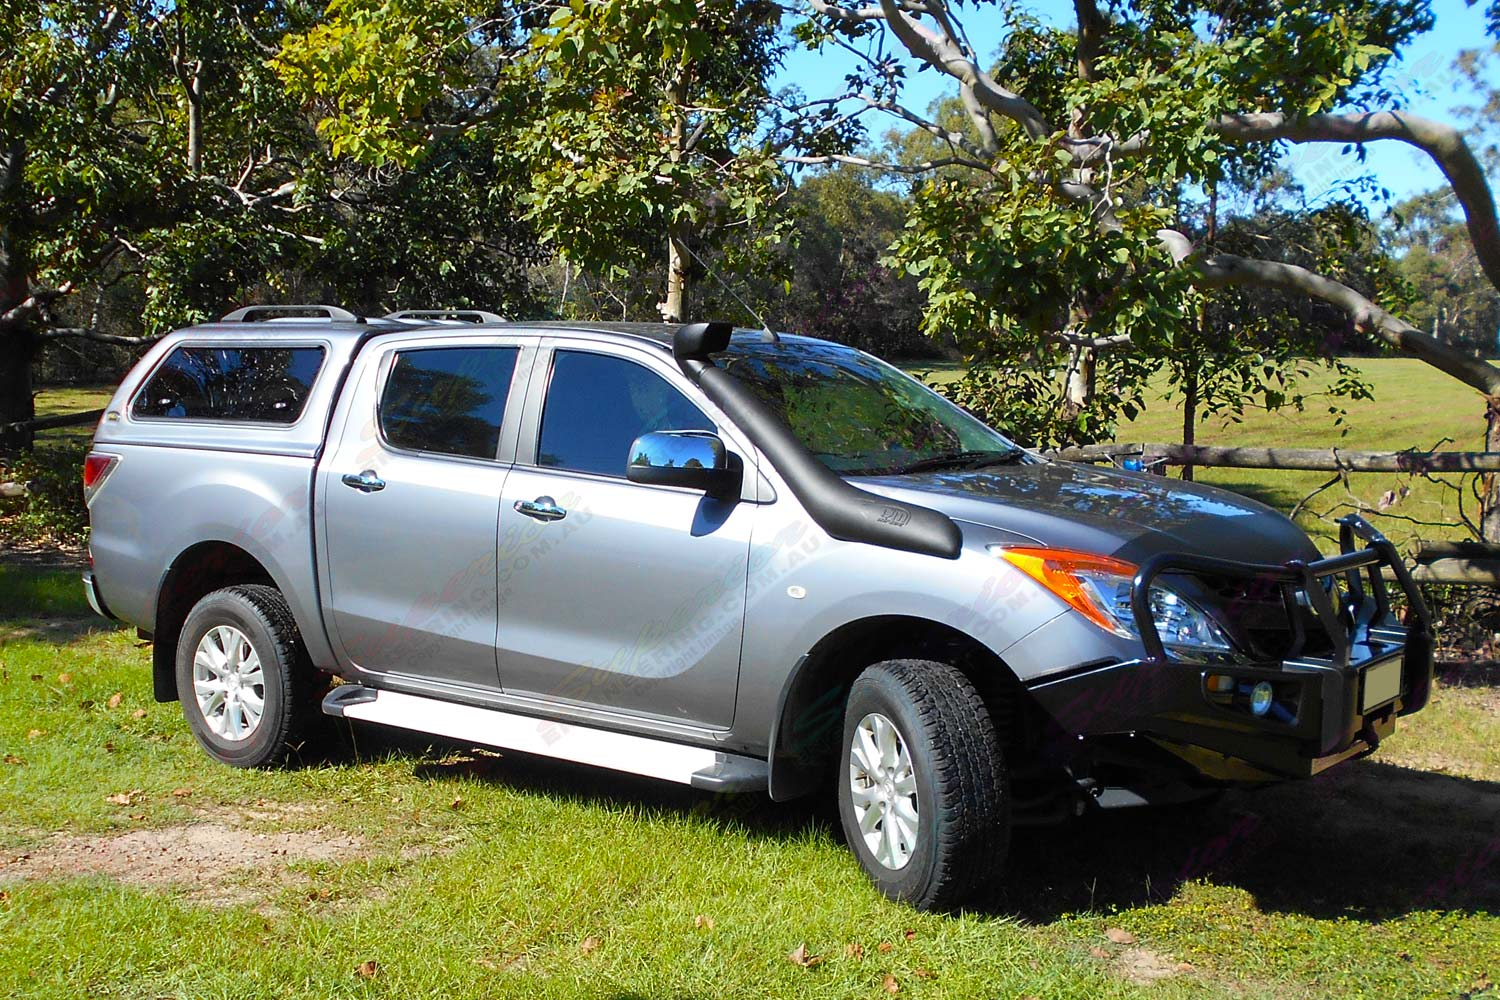 Right side view of a grey Mazda BT-50 dual cab fitted with a Black Ironman Deluxe Commercial Bullbar, Ute canopy and TJM airtec snorkel